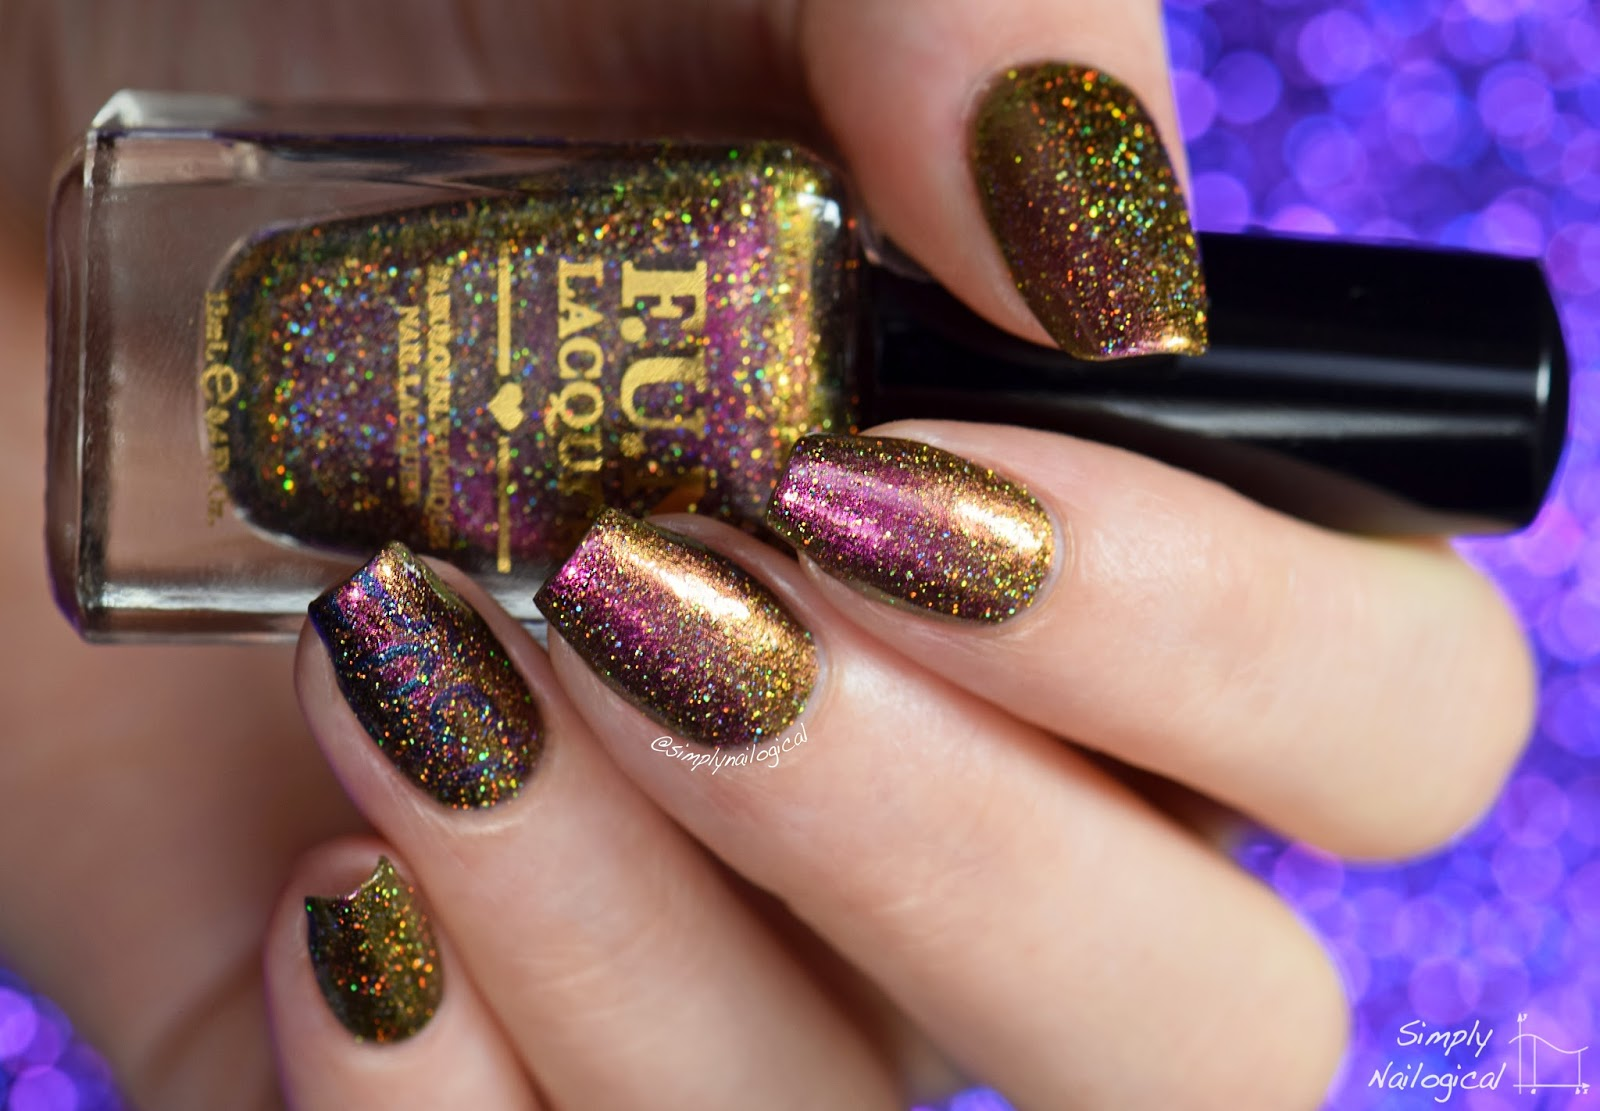 FUN Lacquer 2015 Love collection - Unconditional Love (H)